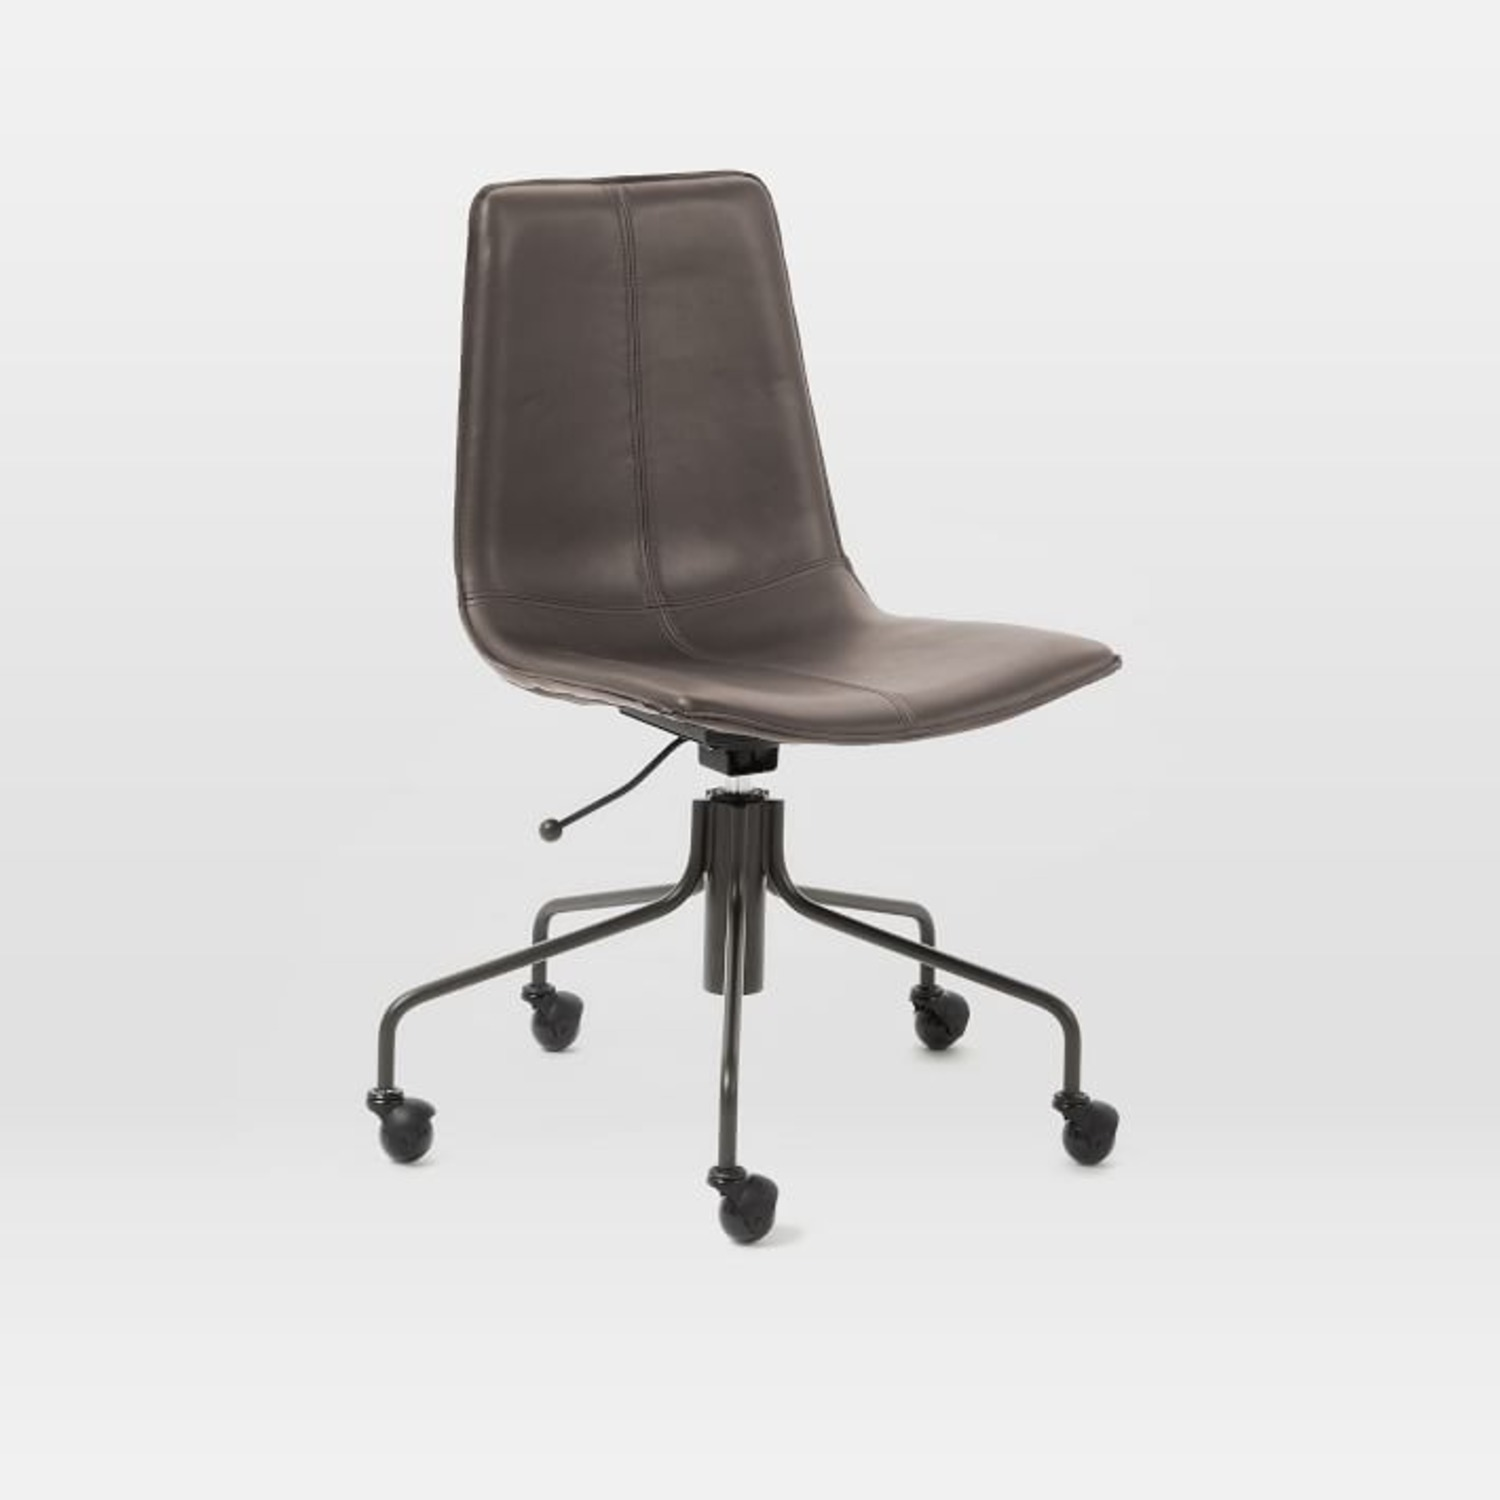 West Elm Slope Office Chair, Charcoal - image-2